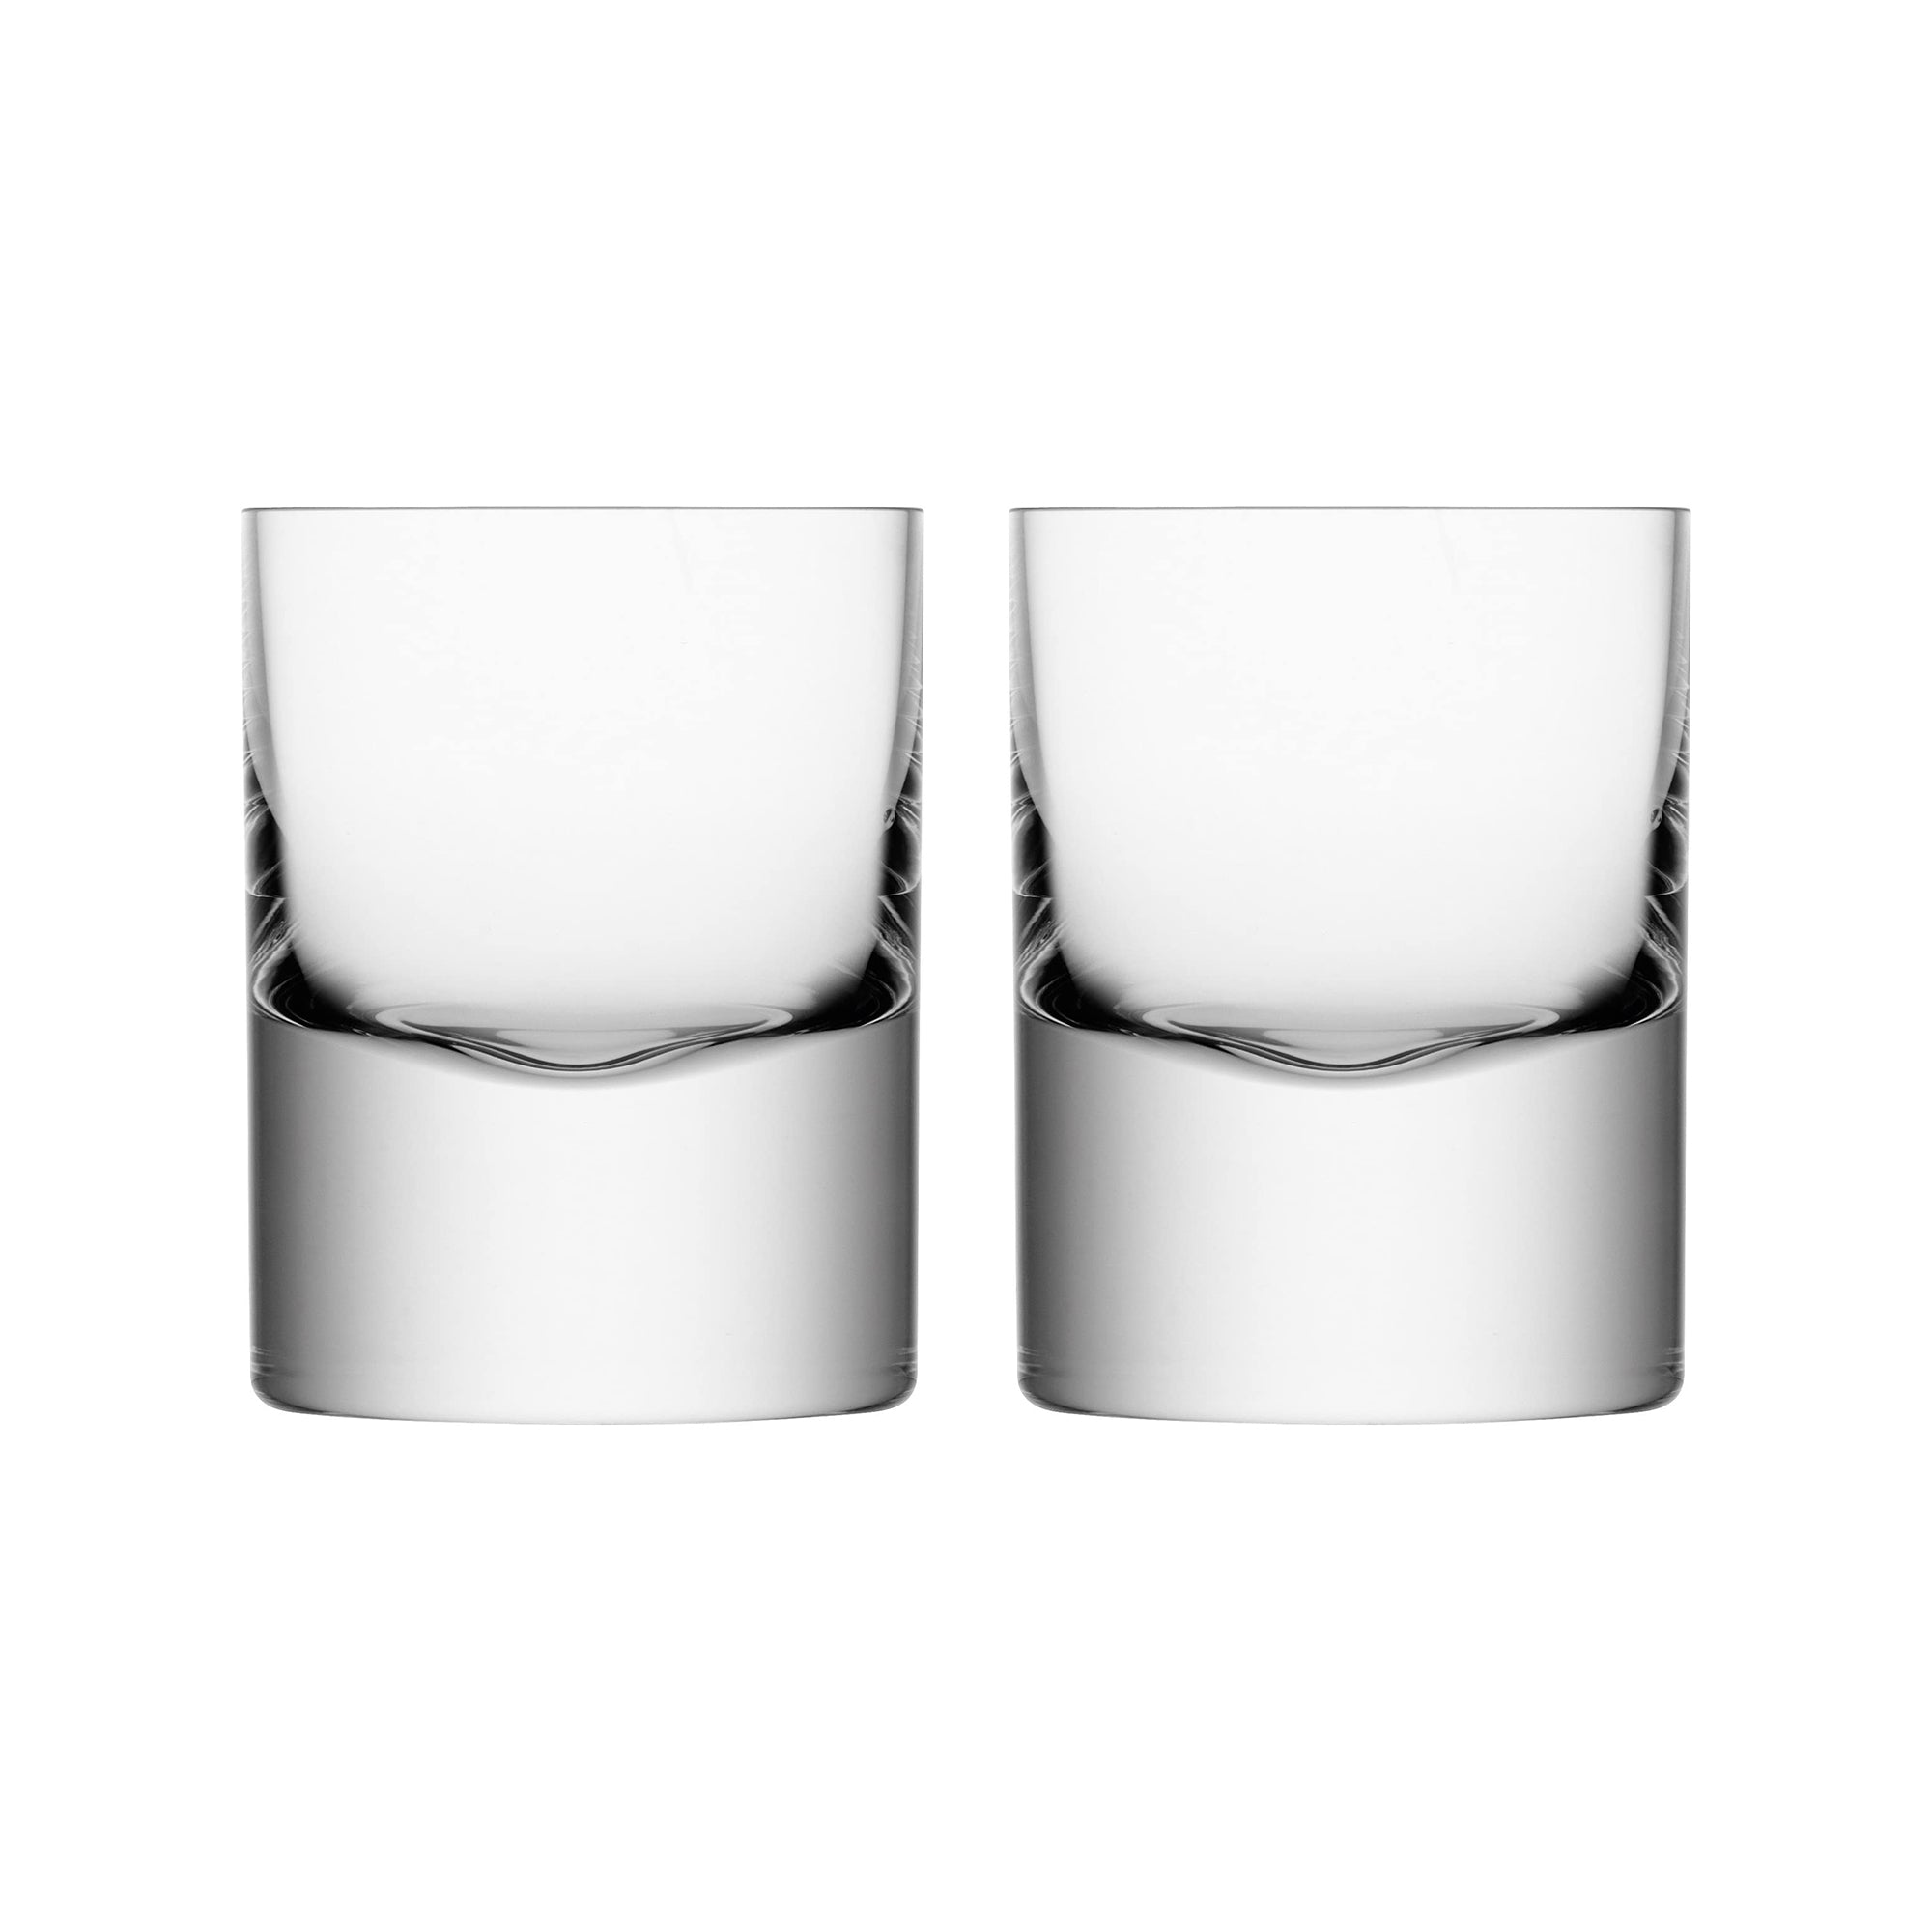 Boreo DOF Glass, Set of 2